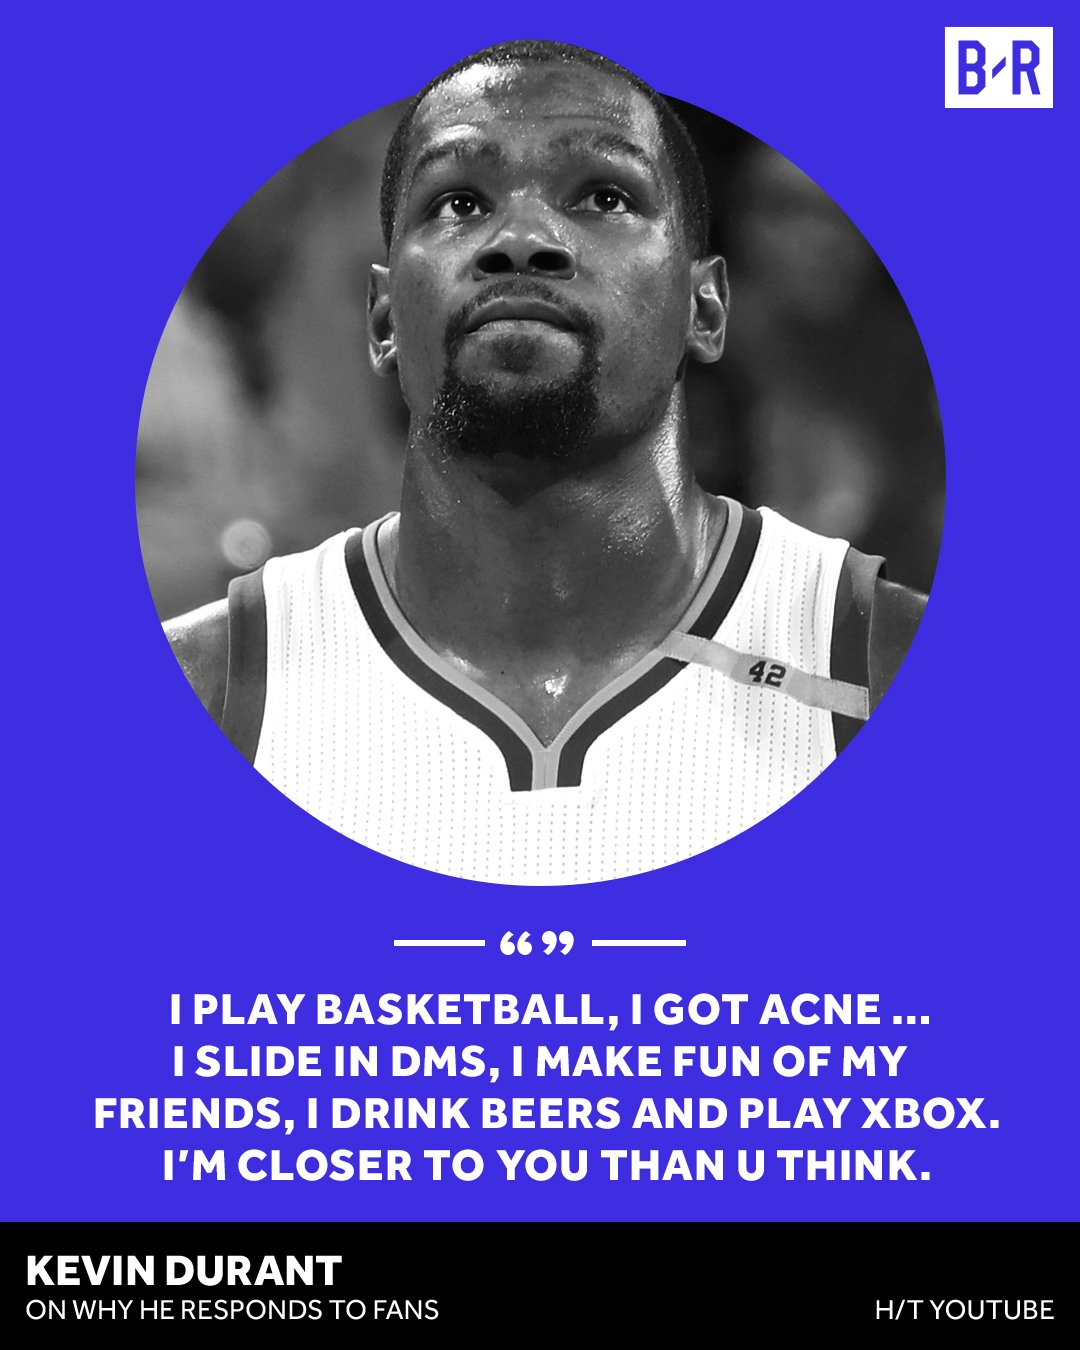 KD says he's just like the rest of us https://t.co/dsktISxEaL